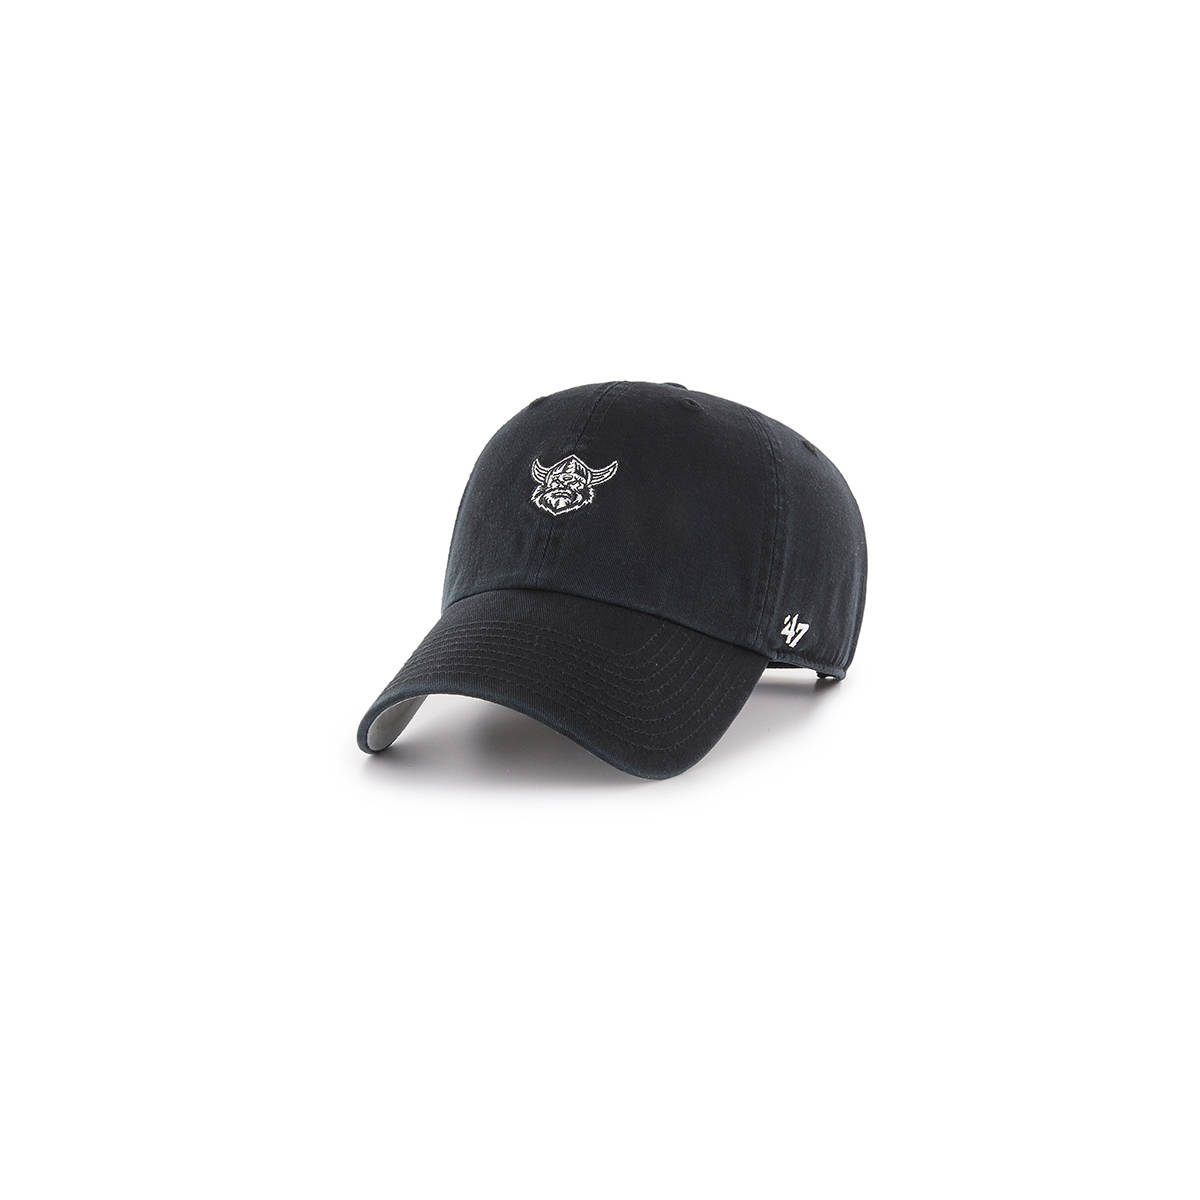 Raiders Base Runner Cap0